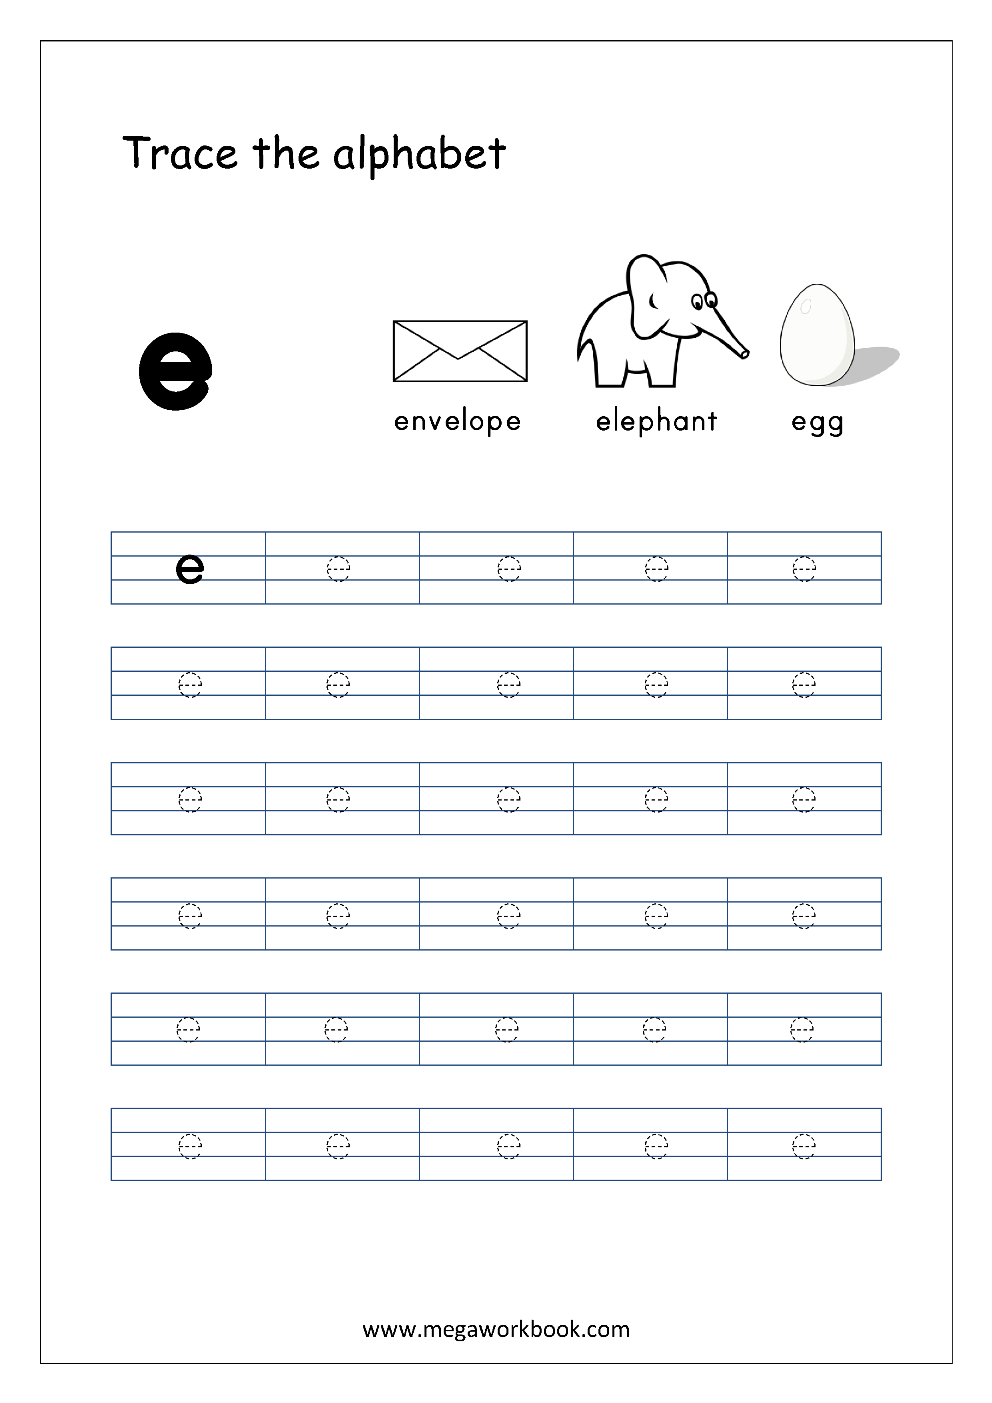 English Worksheet - Alphabet Tracing - Small Letter E intended for Letter E Alphabet Worksheets